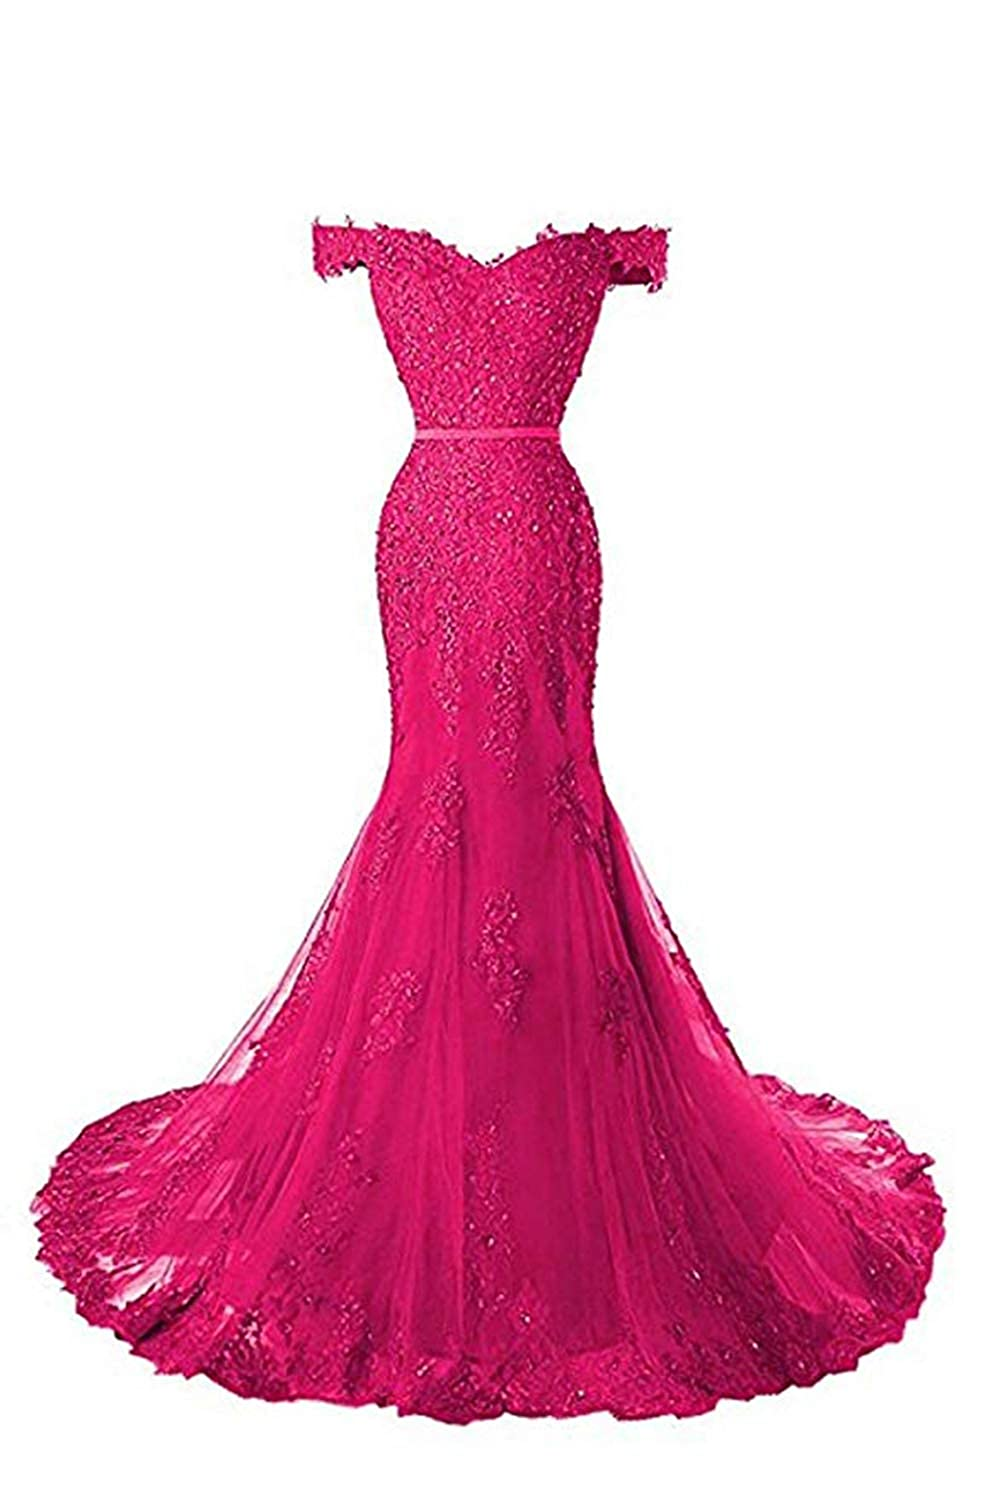 Fuchsia formalmall Women's Off The Shoulder Mermaid Prom Dresses 2019 Long Beaded Lace Applique Evening Gown